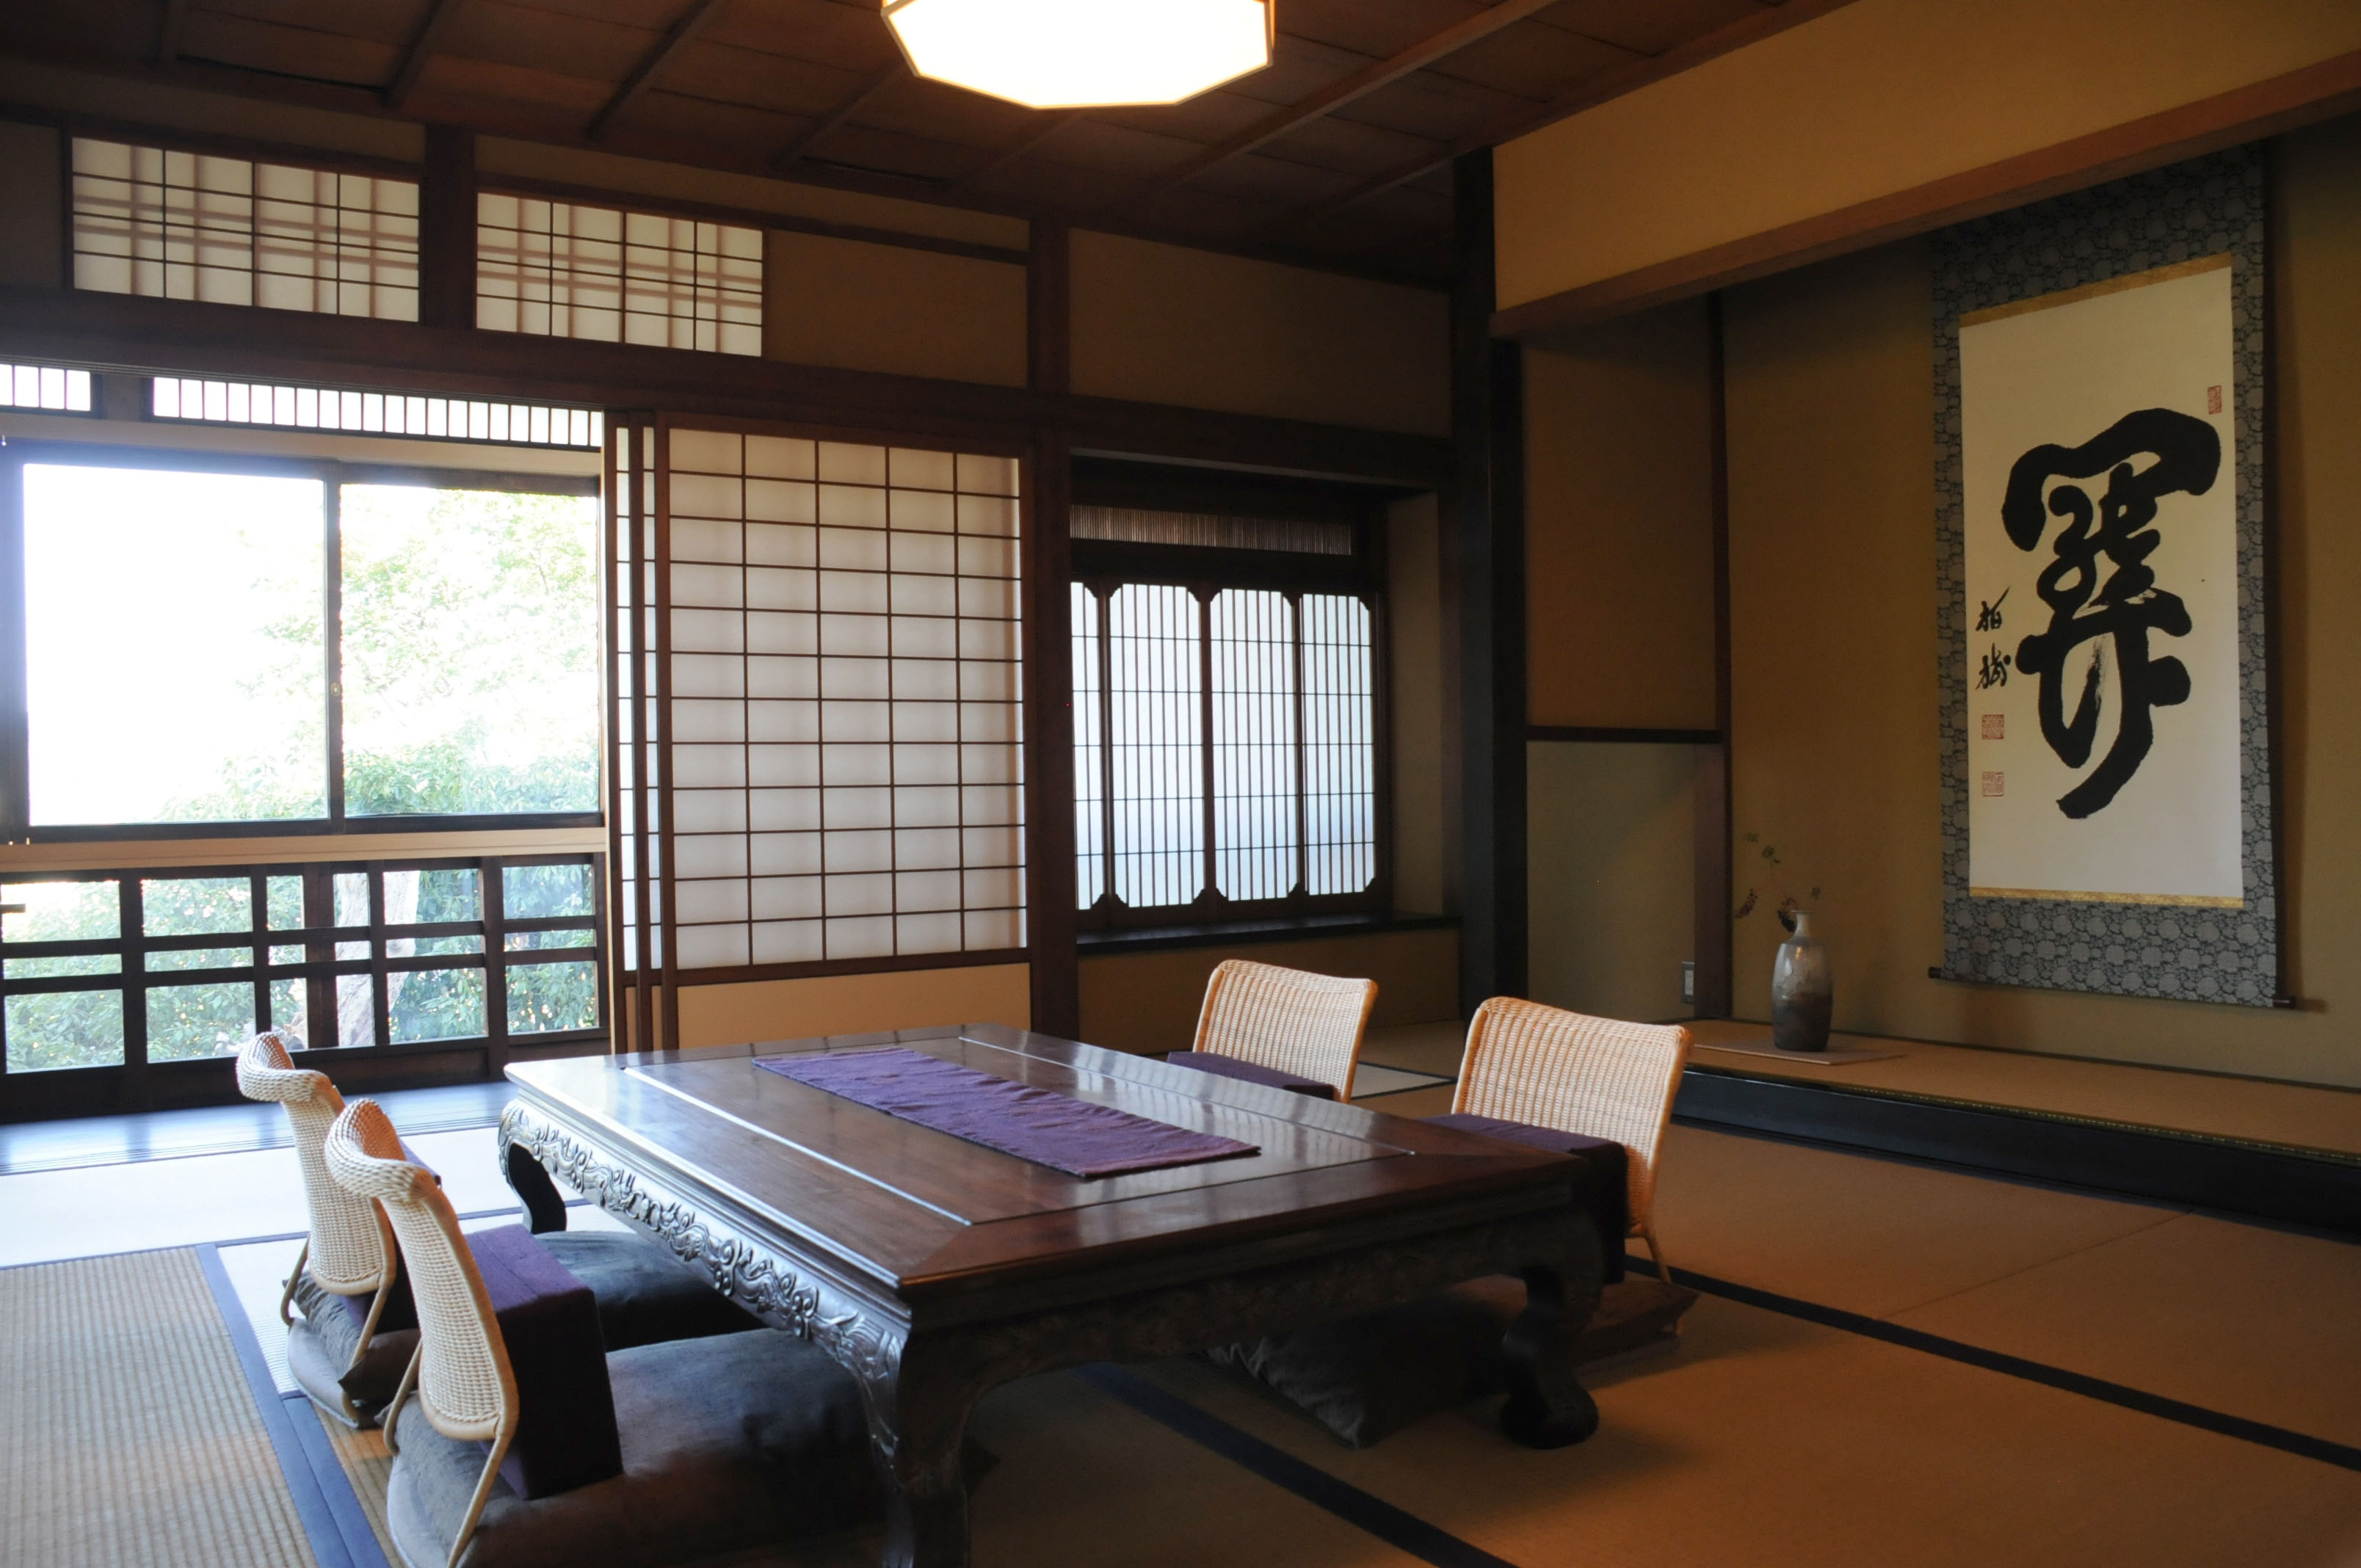 Izumo House's large tatami room retains the traditional style of the original centuries-old building, which was once a district office for Izumo feudal domain. | PHOTO BY SATOKO KAWASAKI